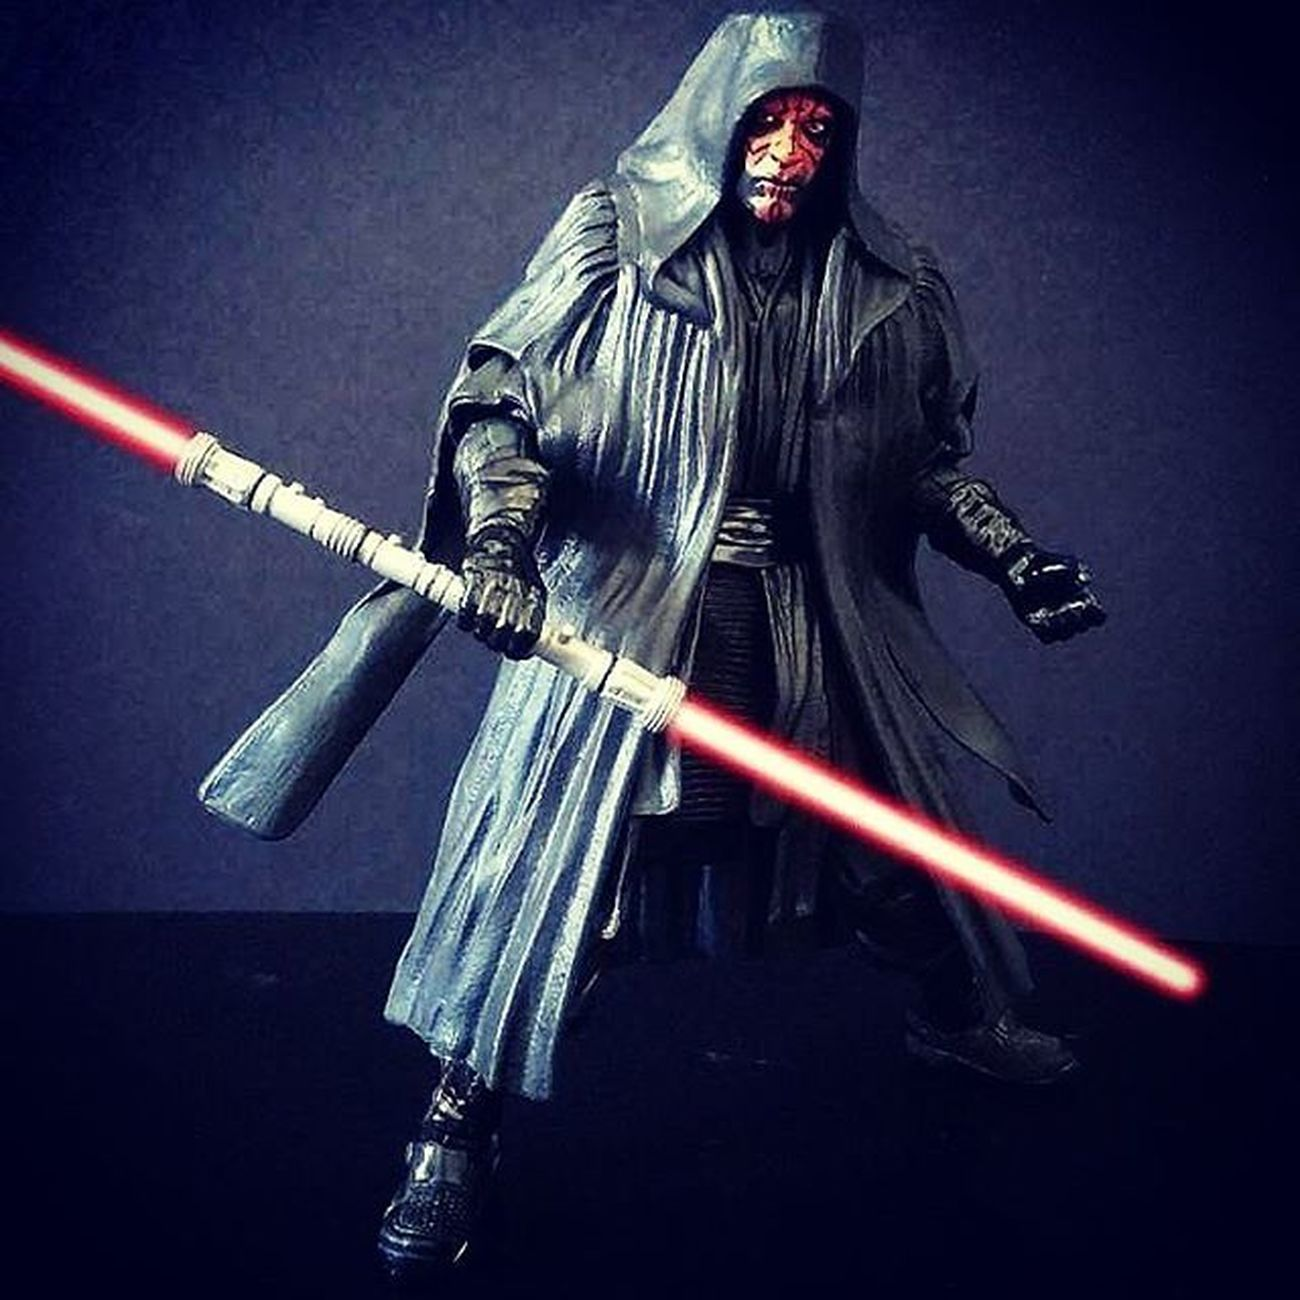 Ok so this is my first proper attempt of doing lightsaber effects on my phone. What do people and my IG Star Wars friends think? I'm open to anyone willing to critique and offer advice to improve. Starwarsblackseries StarWarsCollector Starwarsfigures Starwarstoypix Starwarstoyfigs HasbroStarWars DarthMaul OldMaster Sithlord Starwarsactionfigures Toyphotography Toystagram Hobby Starwarsgeek GeekPhotography BlackSeries6Inch Starwarstoys Realmofcollectors Toyunion Toygroup_alliance